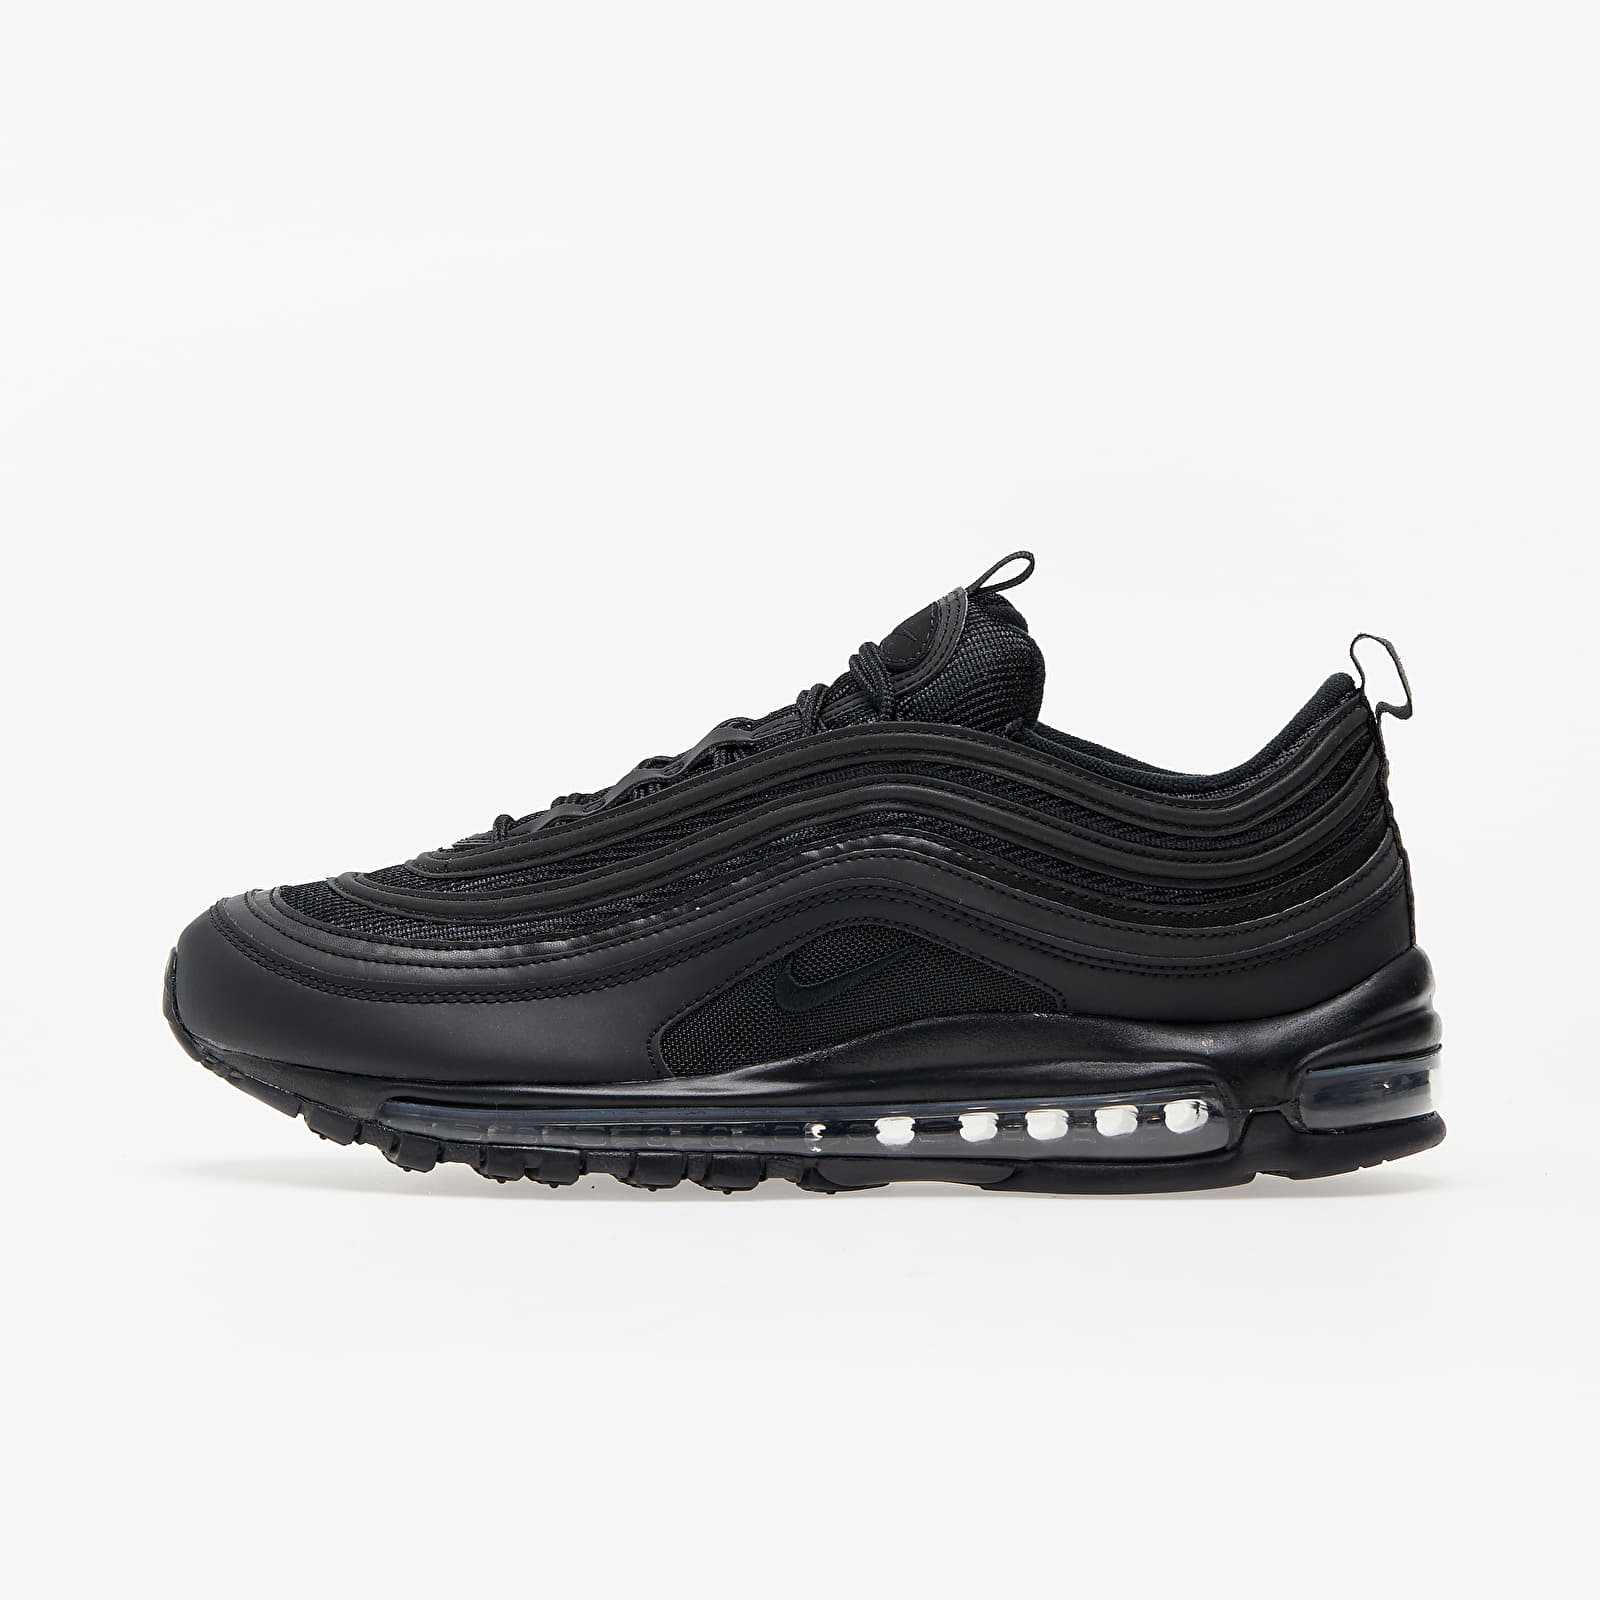 Nike Air Max 97 Black/ Black-White EUR 42.5